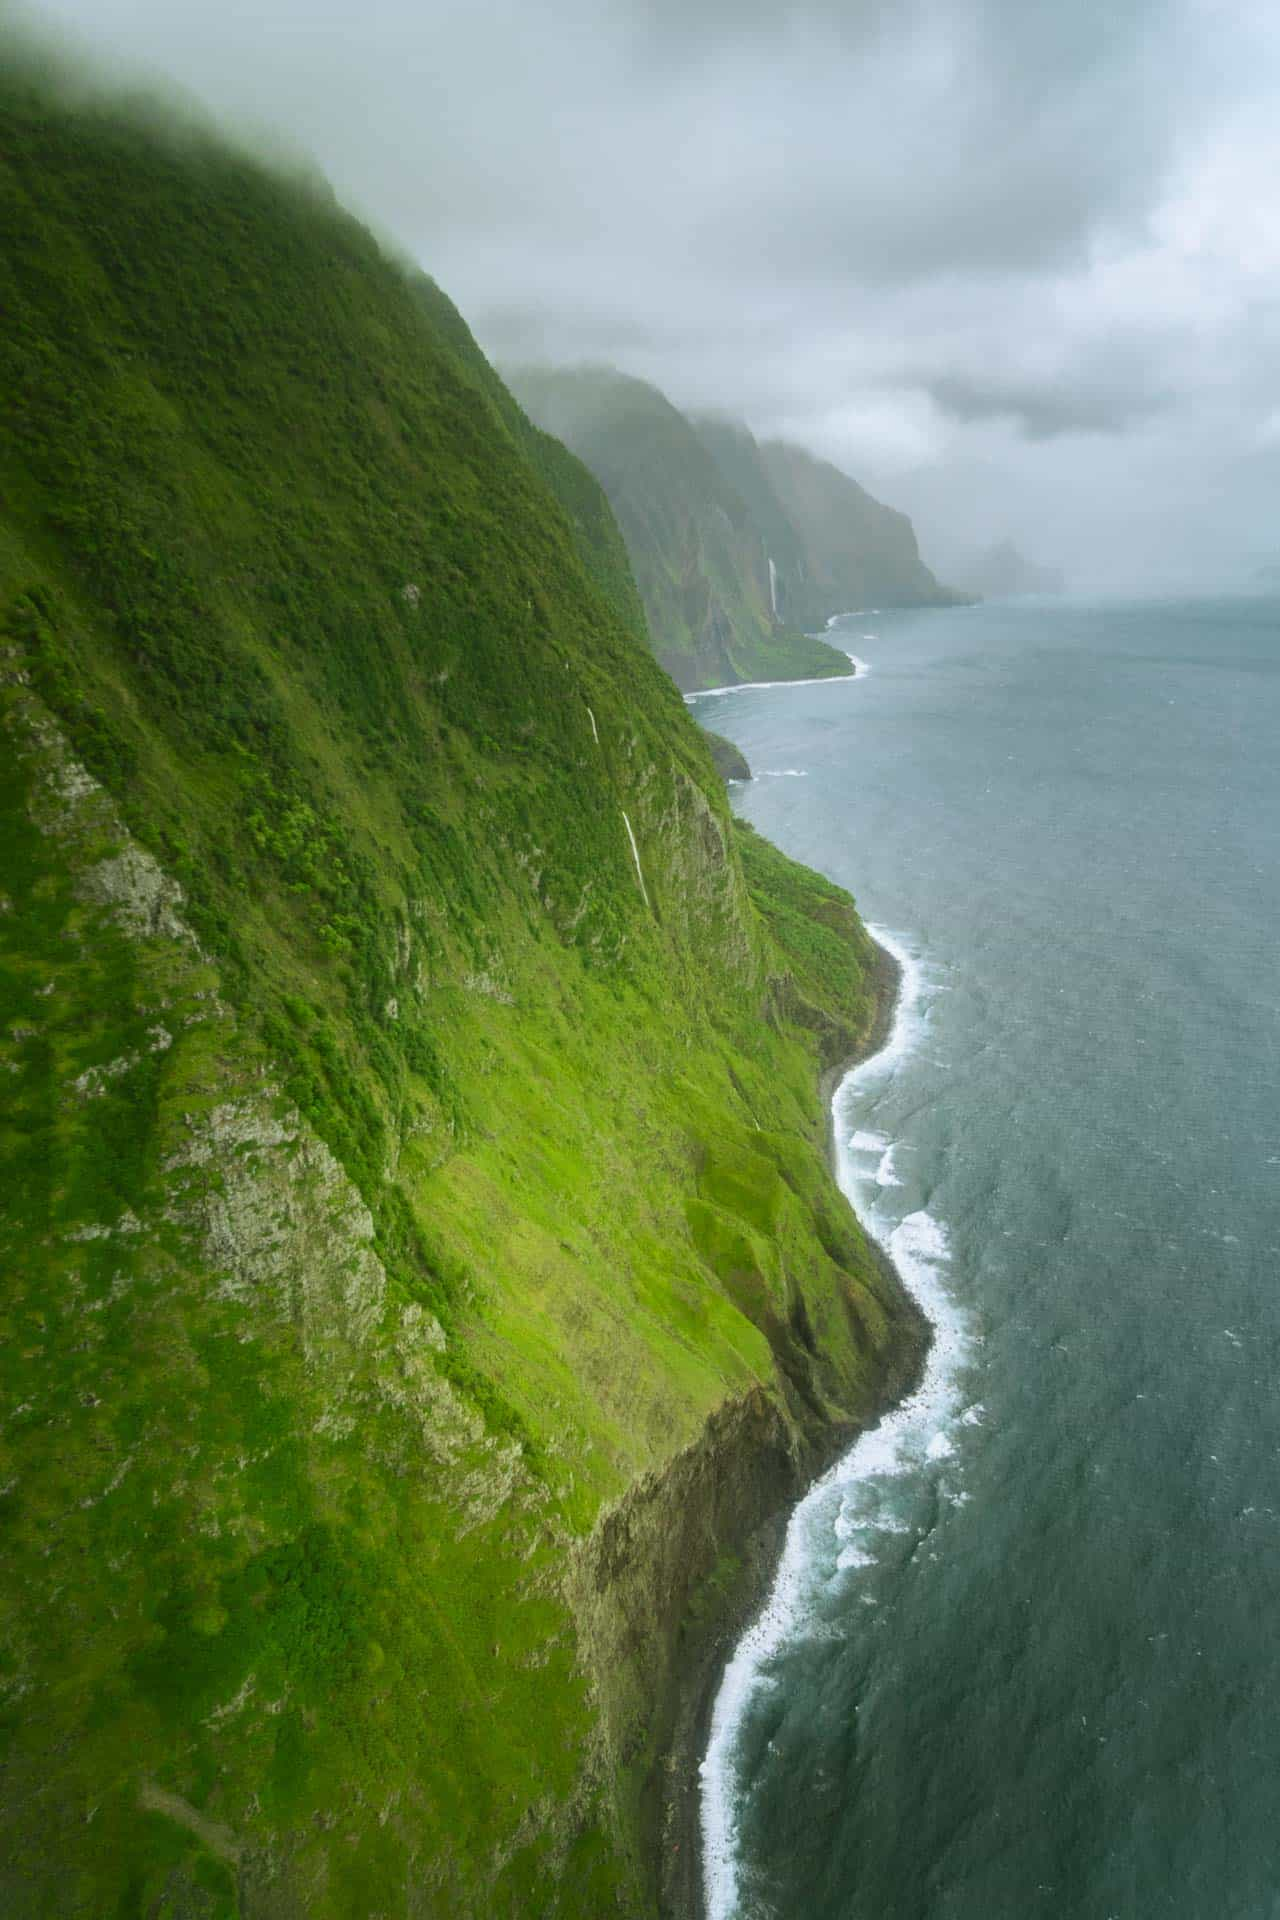 Helicopter Tour over Maui